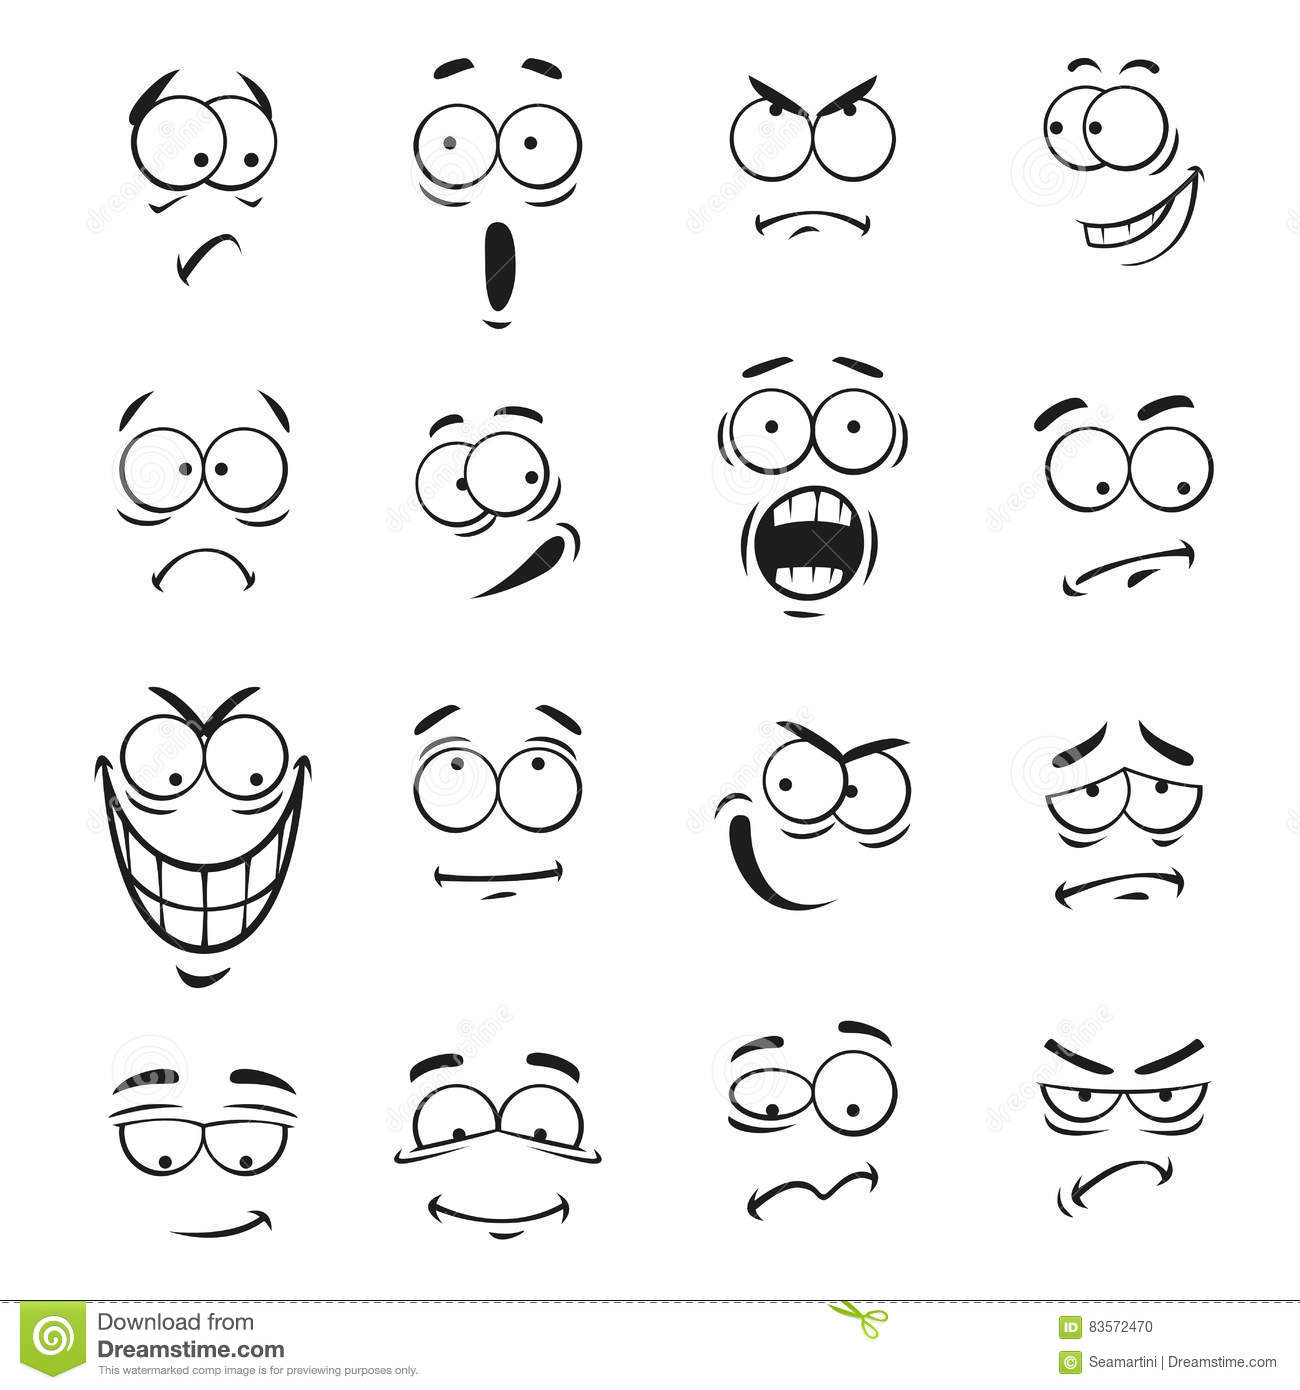 Human Cartoon Emoticon Faces With Expressions Stock Vector